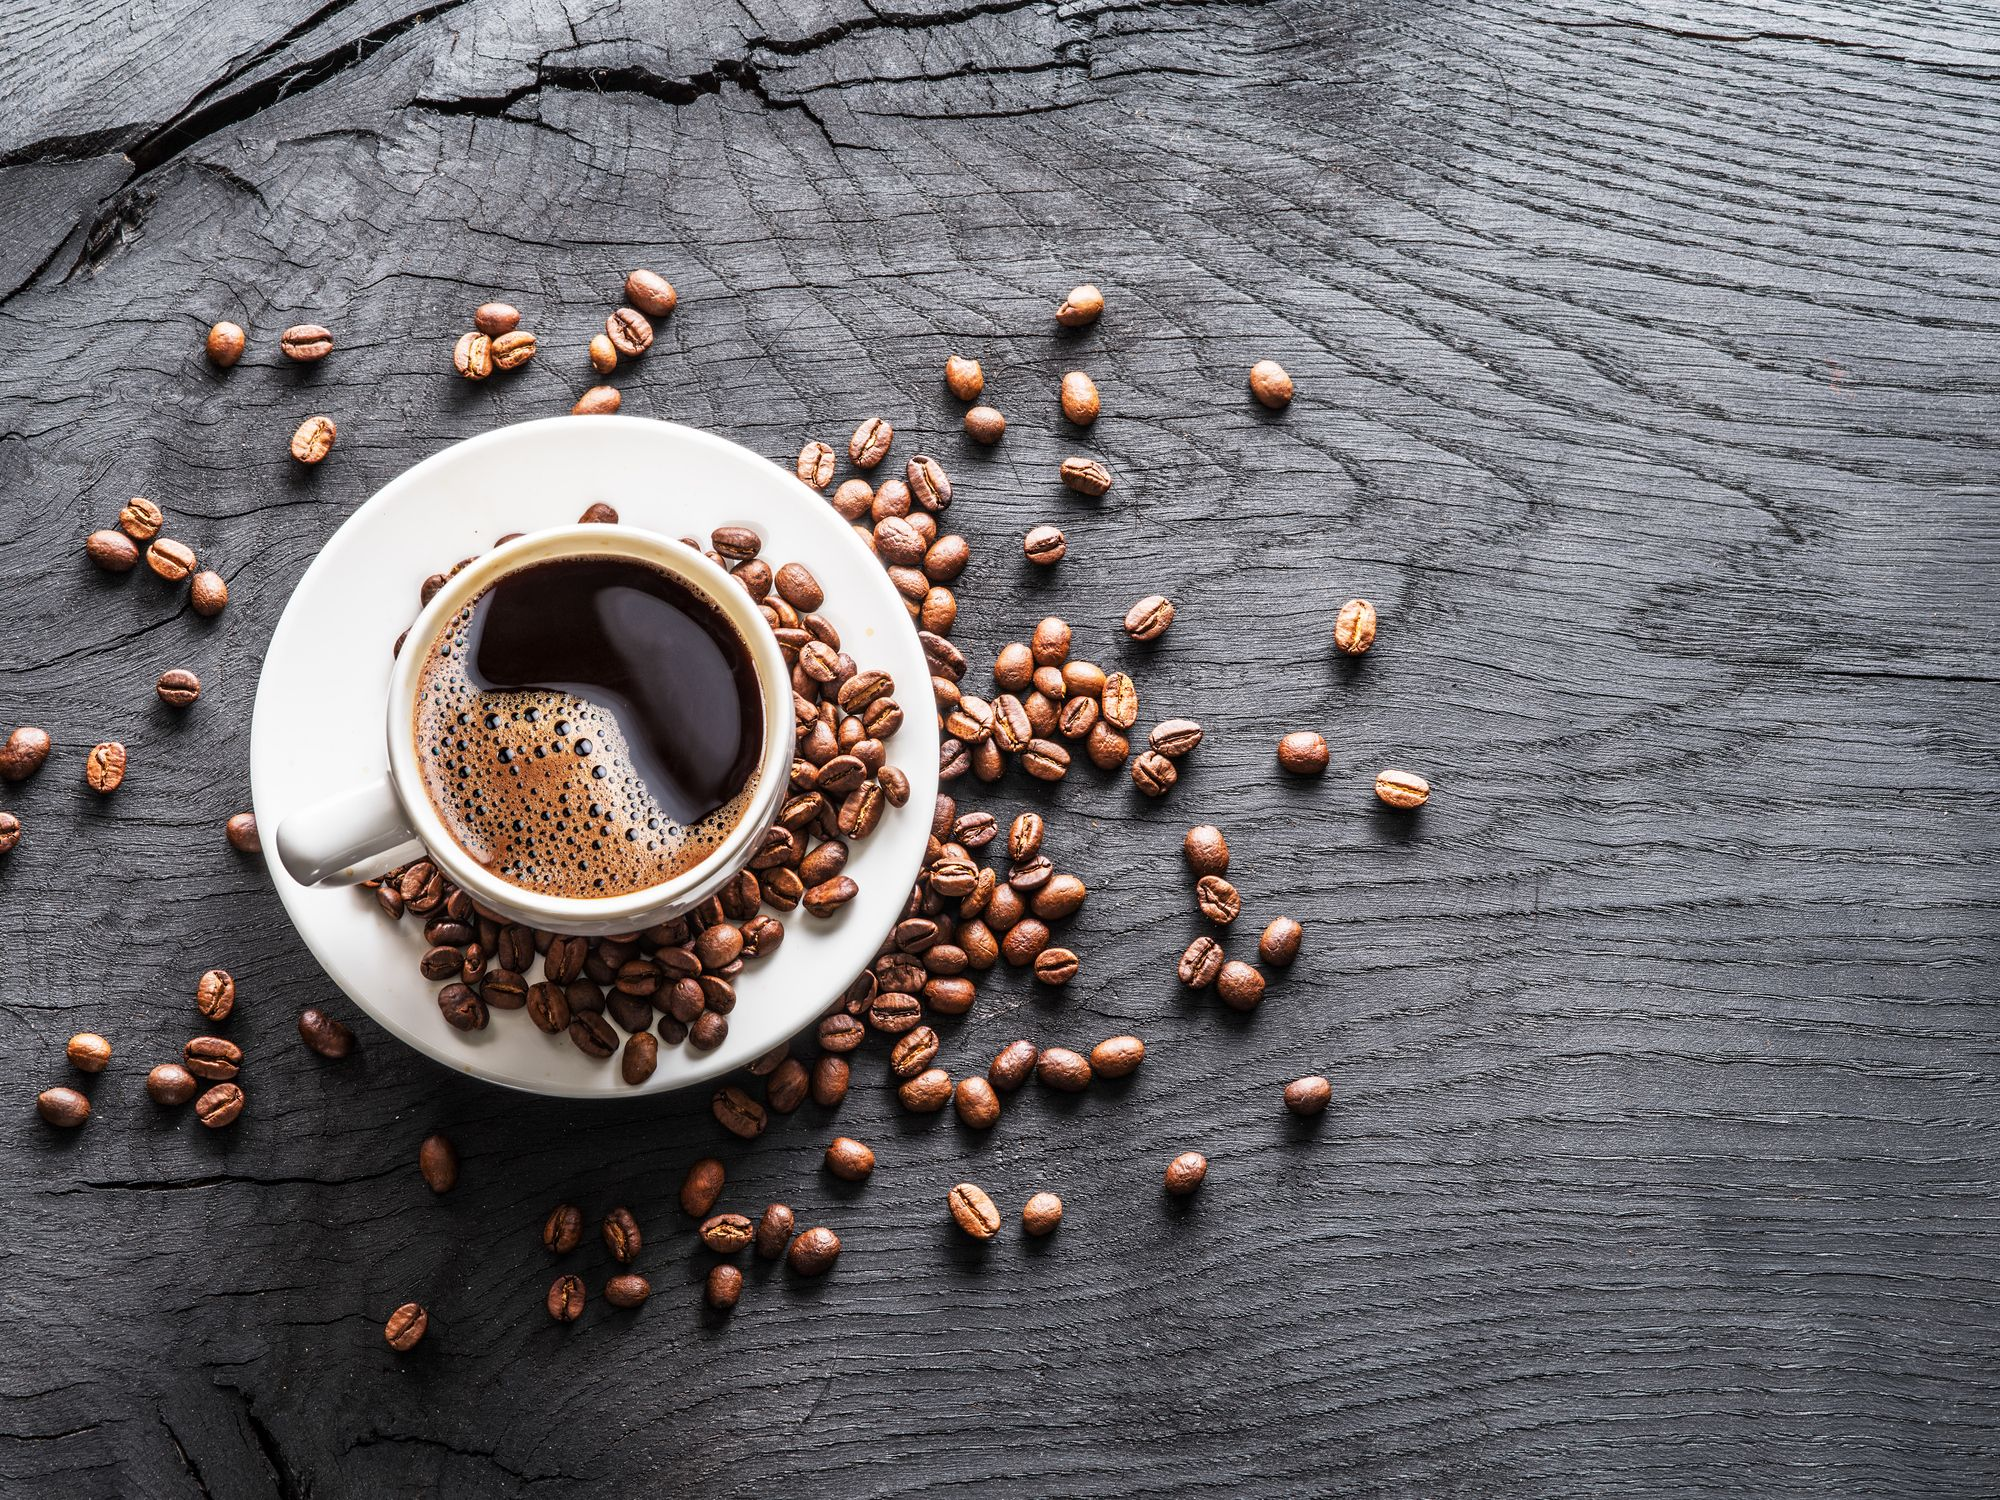 6 Steps to Your Best Cup of Coffee